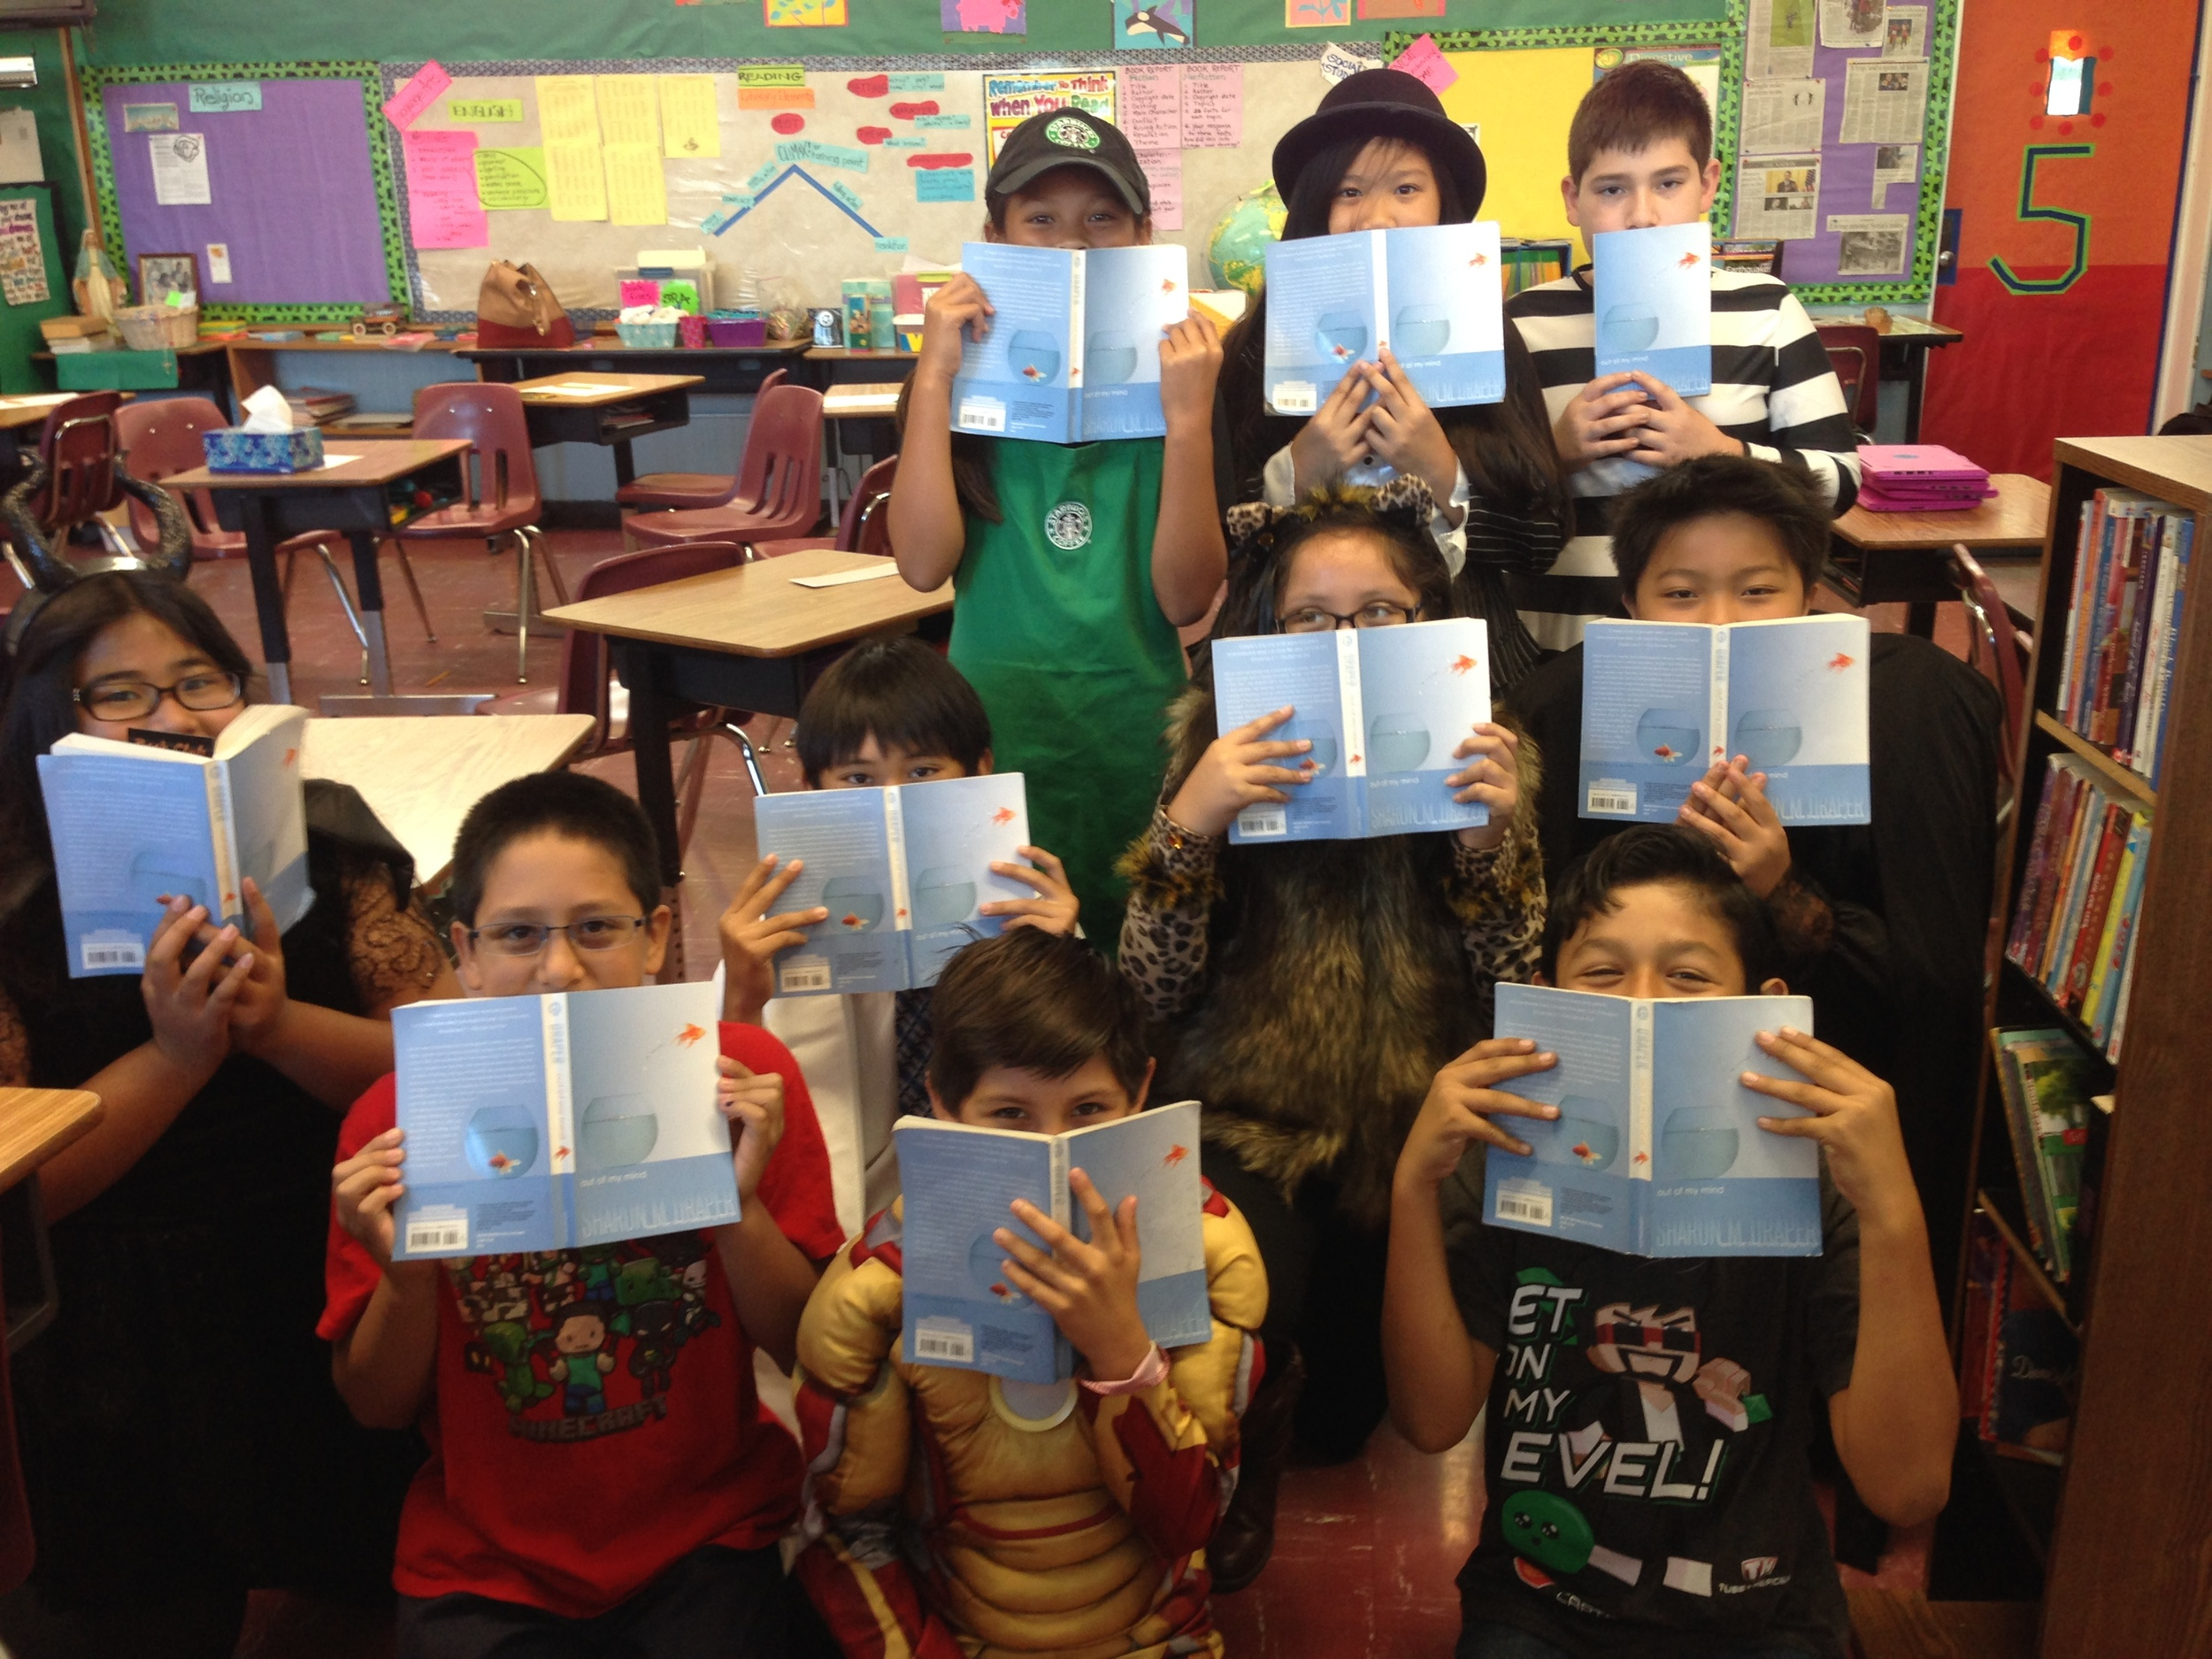 Fifth grade readers at St. Lucy Catholic School in Long Beach, California: : Grace, Giovanni, Vincent, Xavier, Alana, Zeus, Ethan, Eliyah, Samantha, and Zachary.